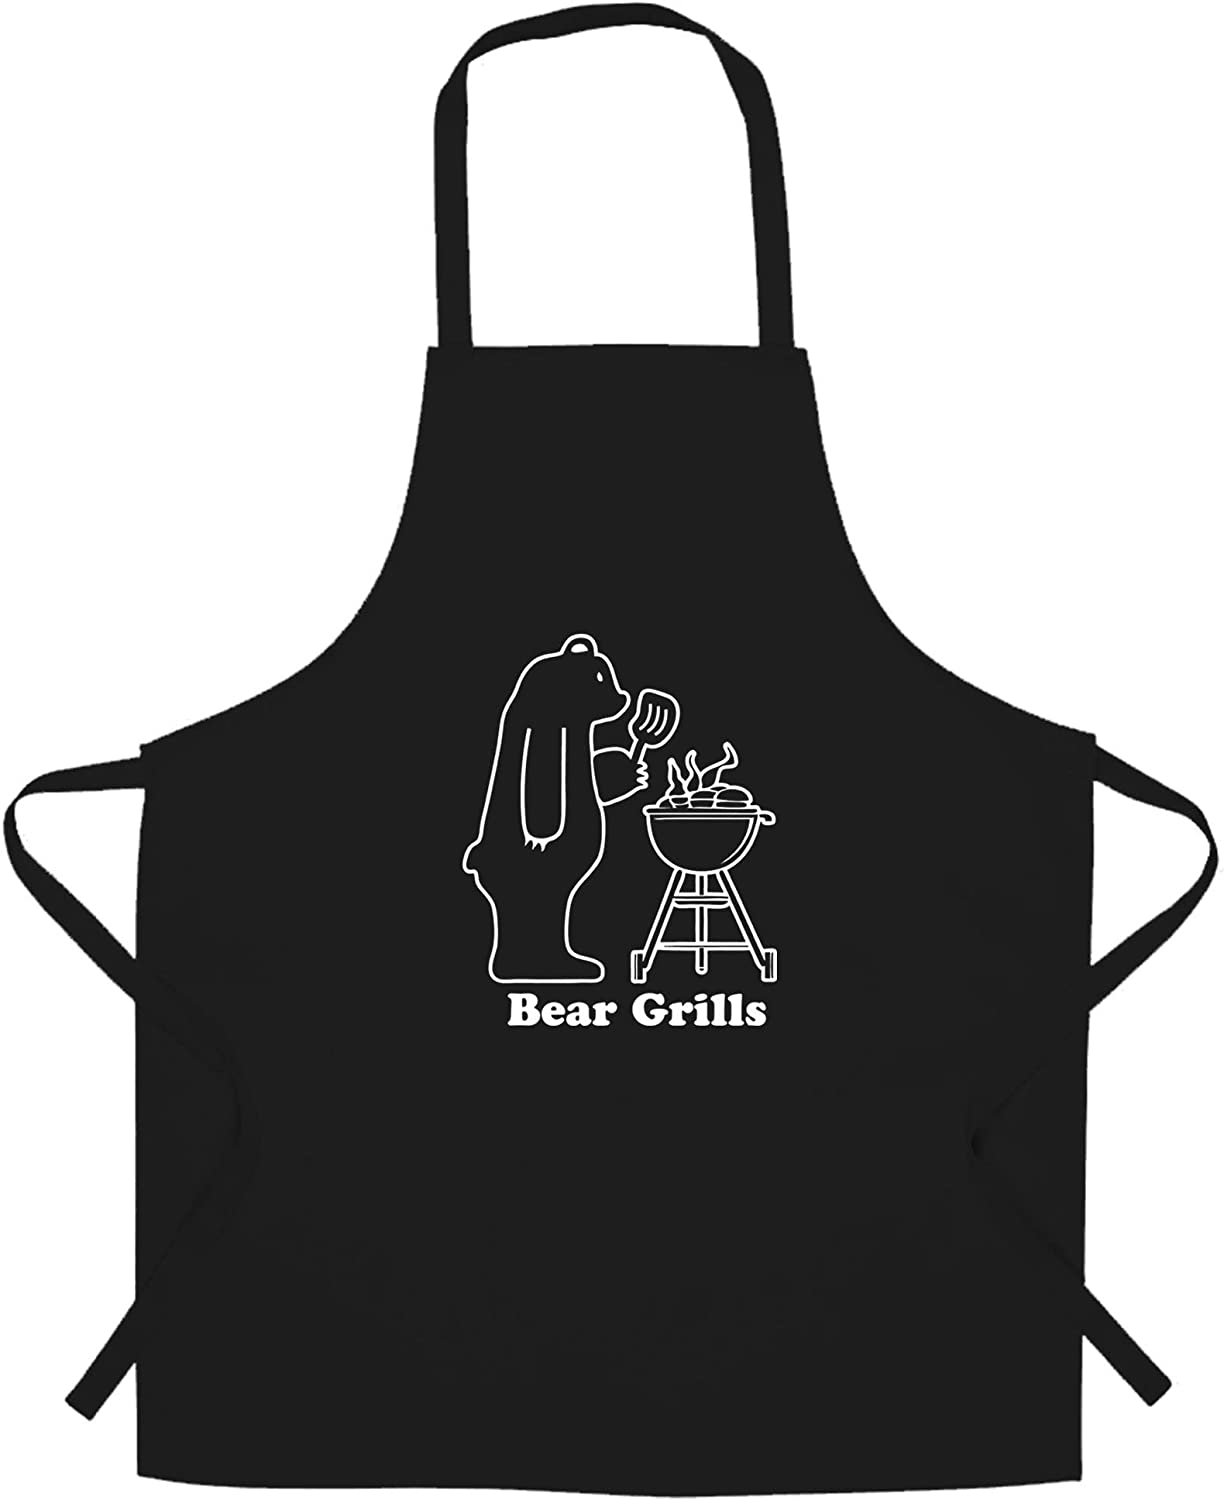 Novelty Barbecue Chef's Apron Grilling Bear Grills Joke Black One Size